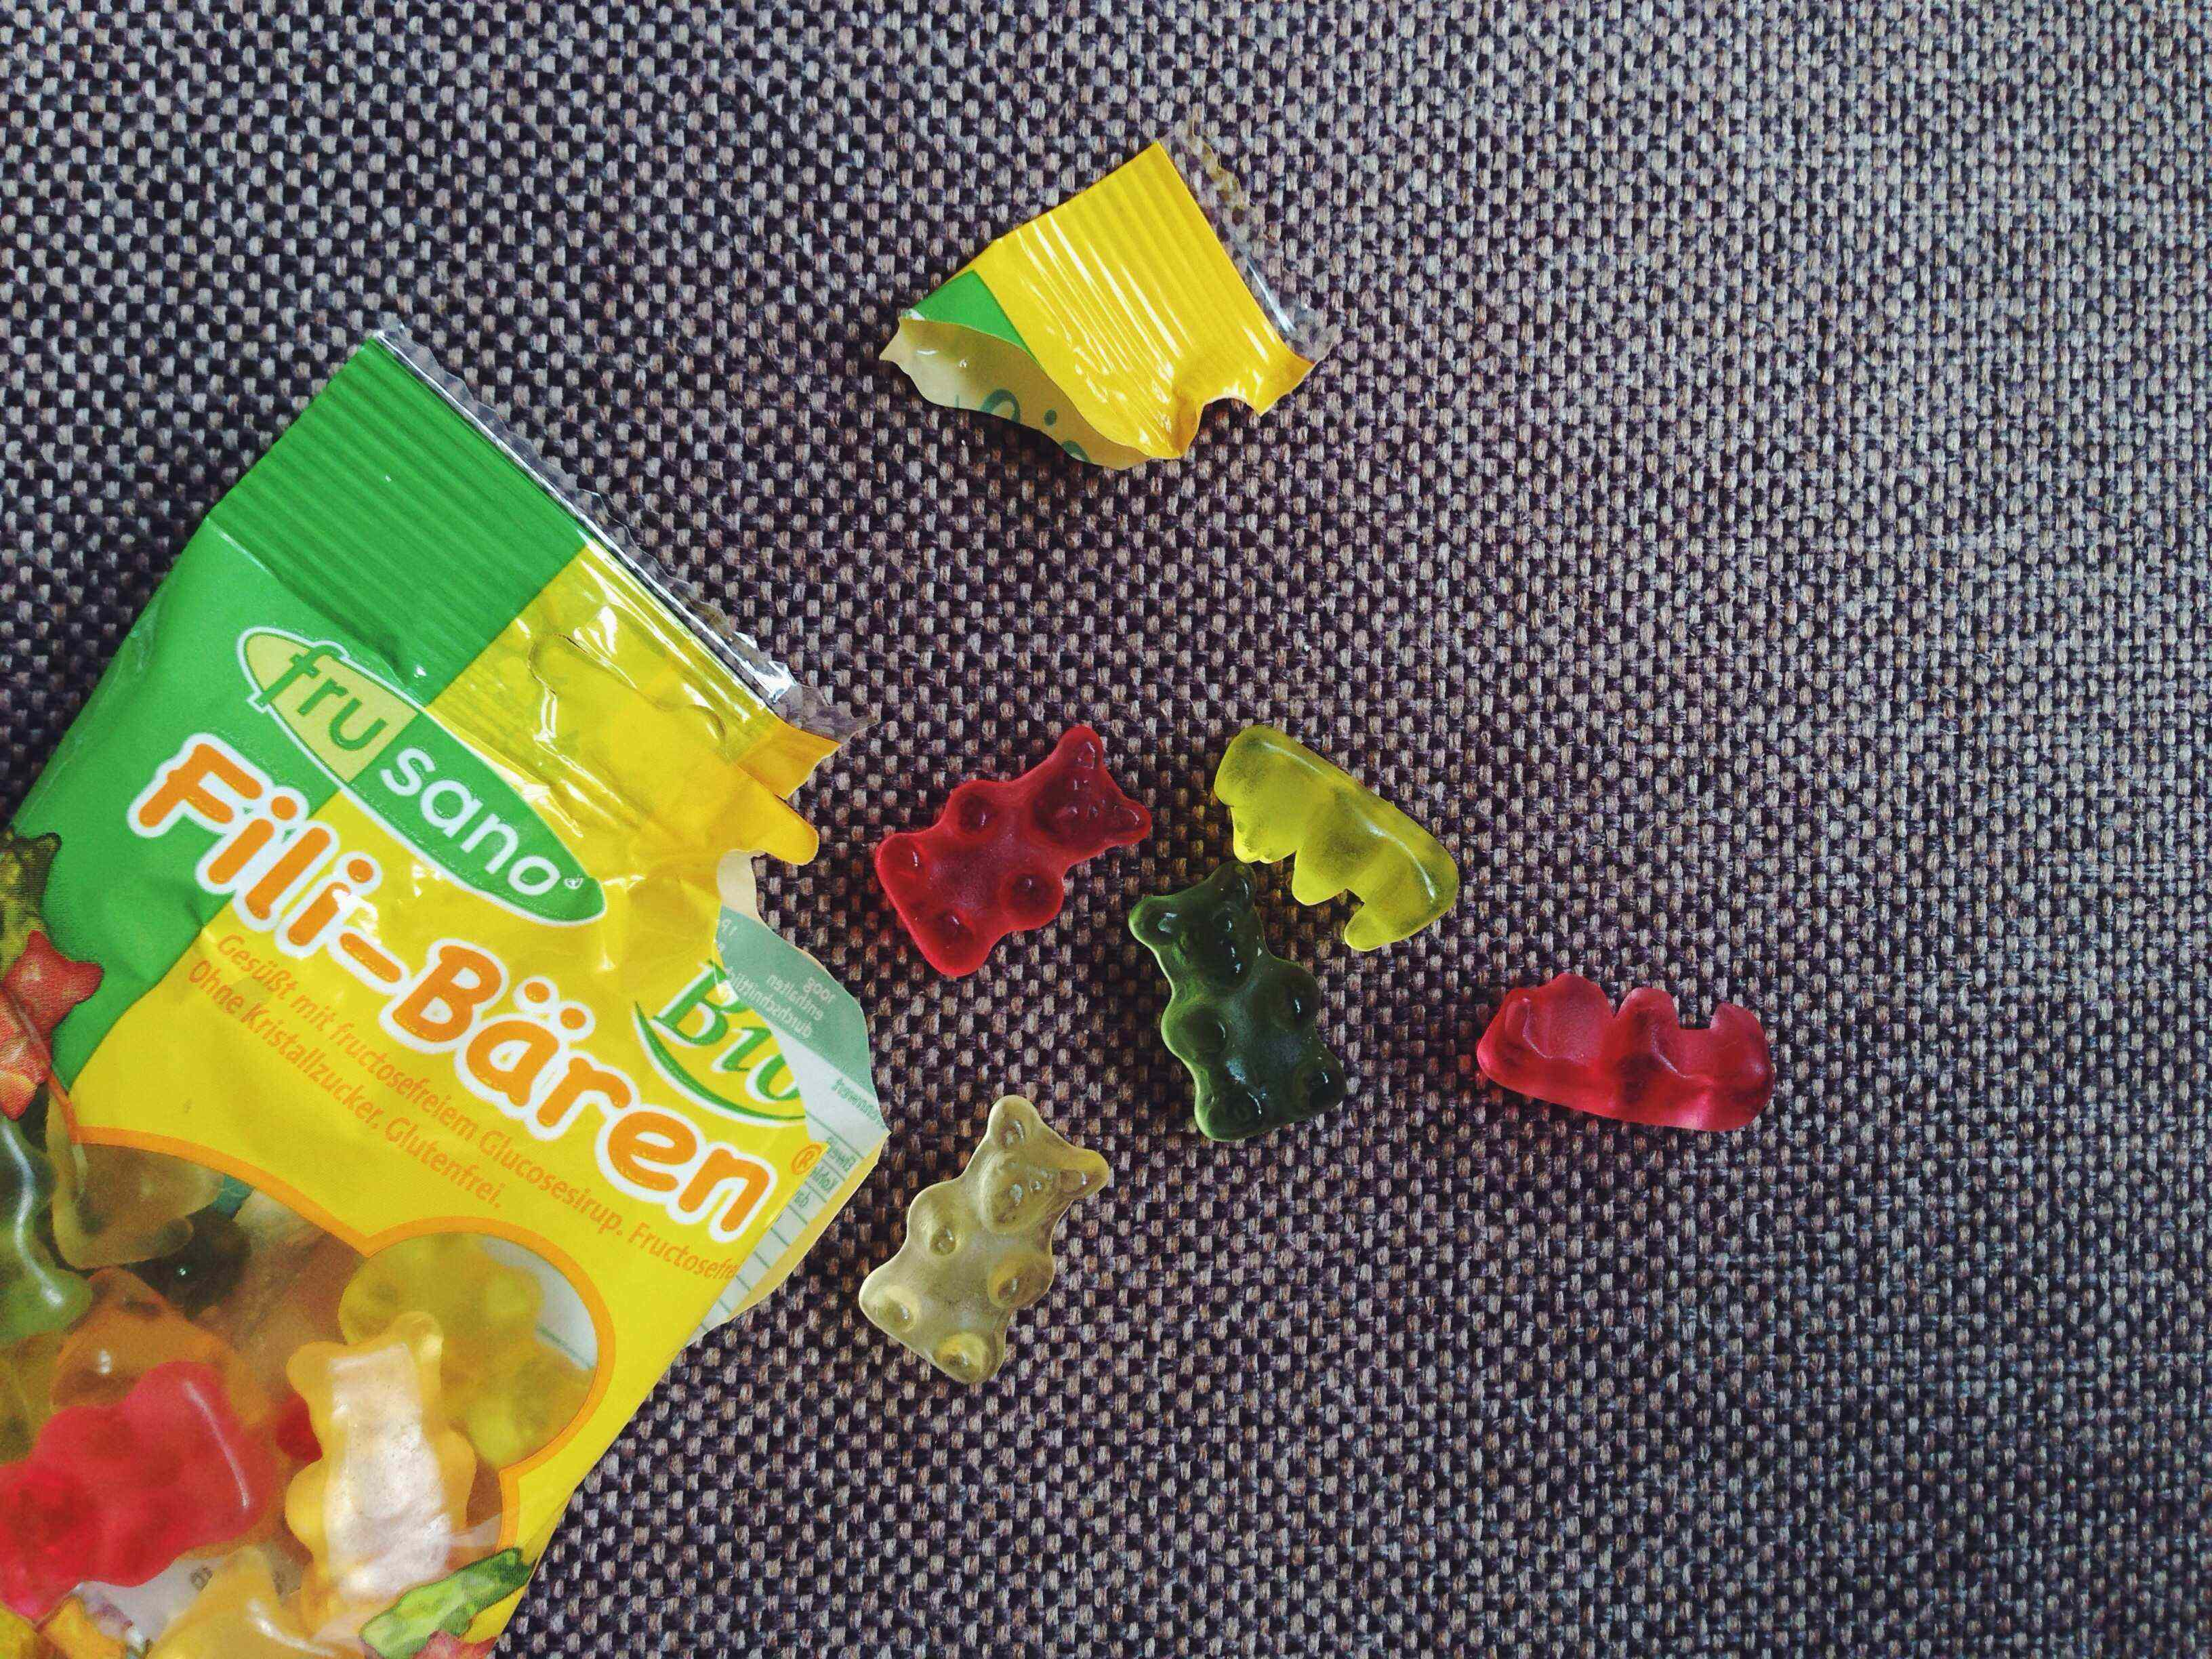 Review: Fructose free, gluten free gummy bears by Frusano